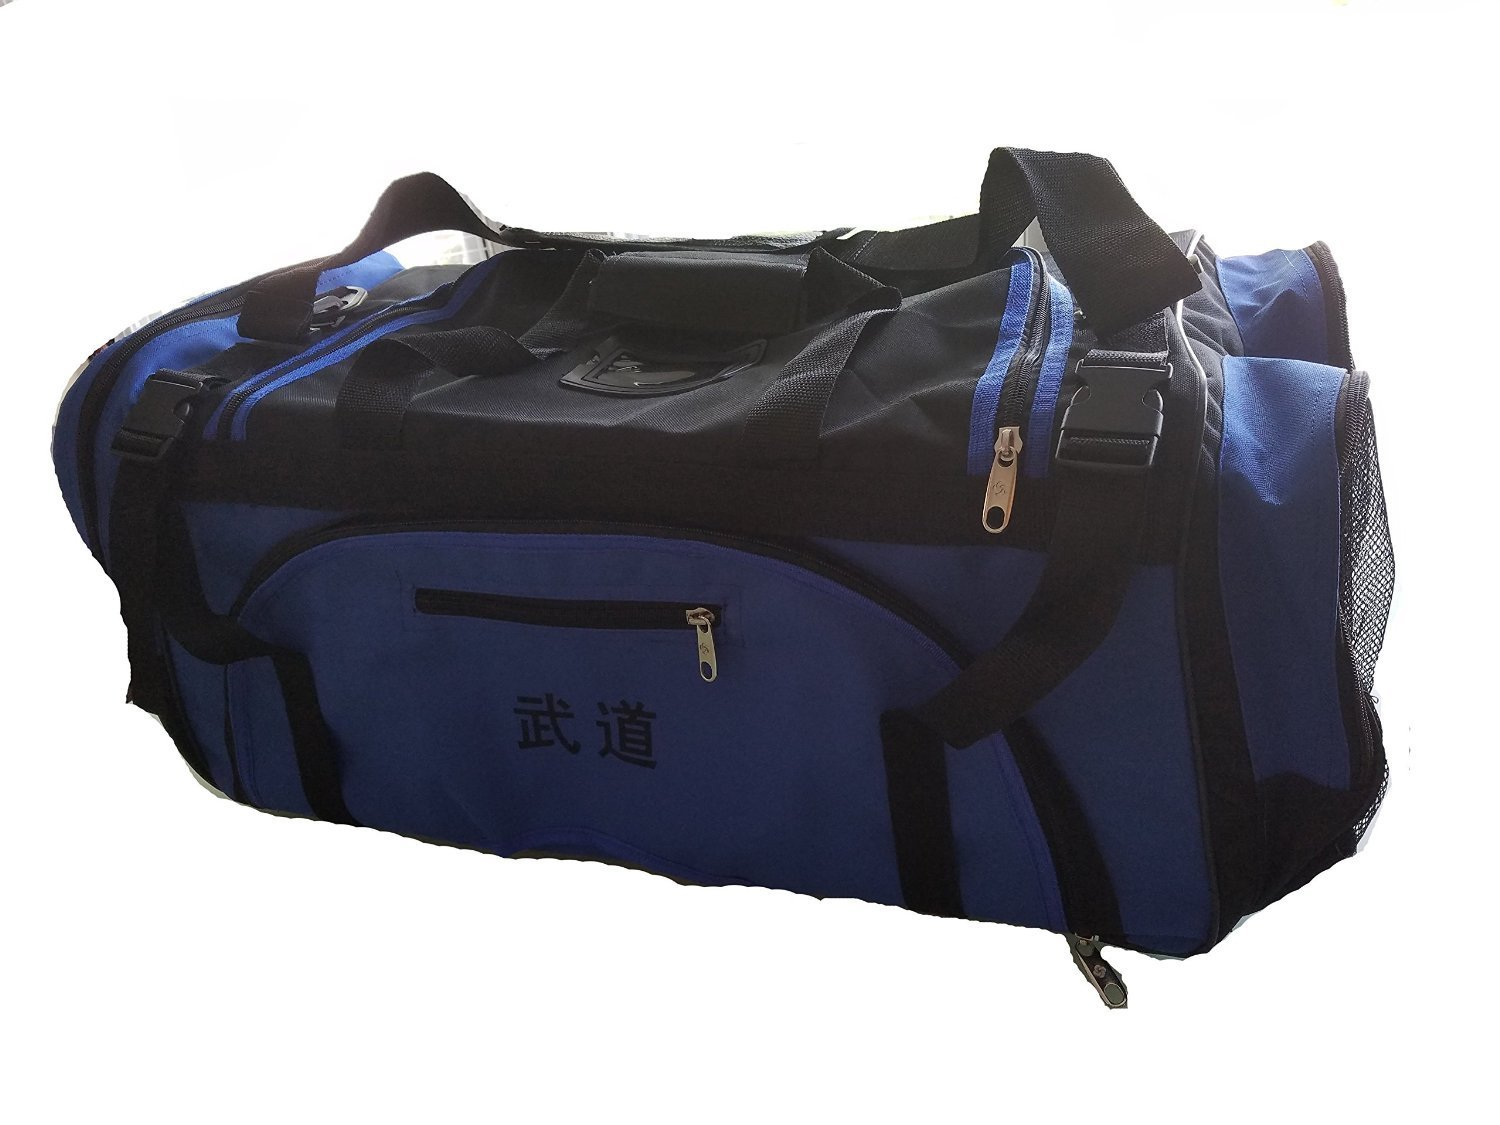 [GTE Zone] Taekwondo, Martial Arts, MMA, Karate, Sparring Gear Equipment Bags (13''x27''x14'' (Deluxe Blue Bag), 125E)